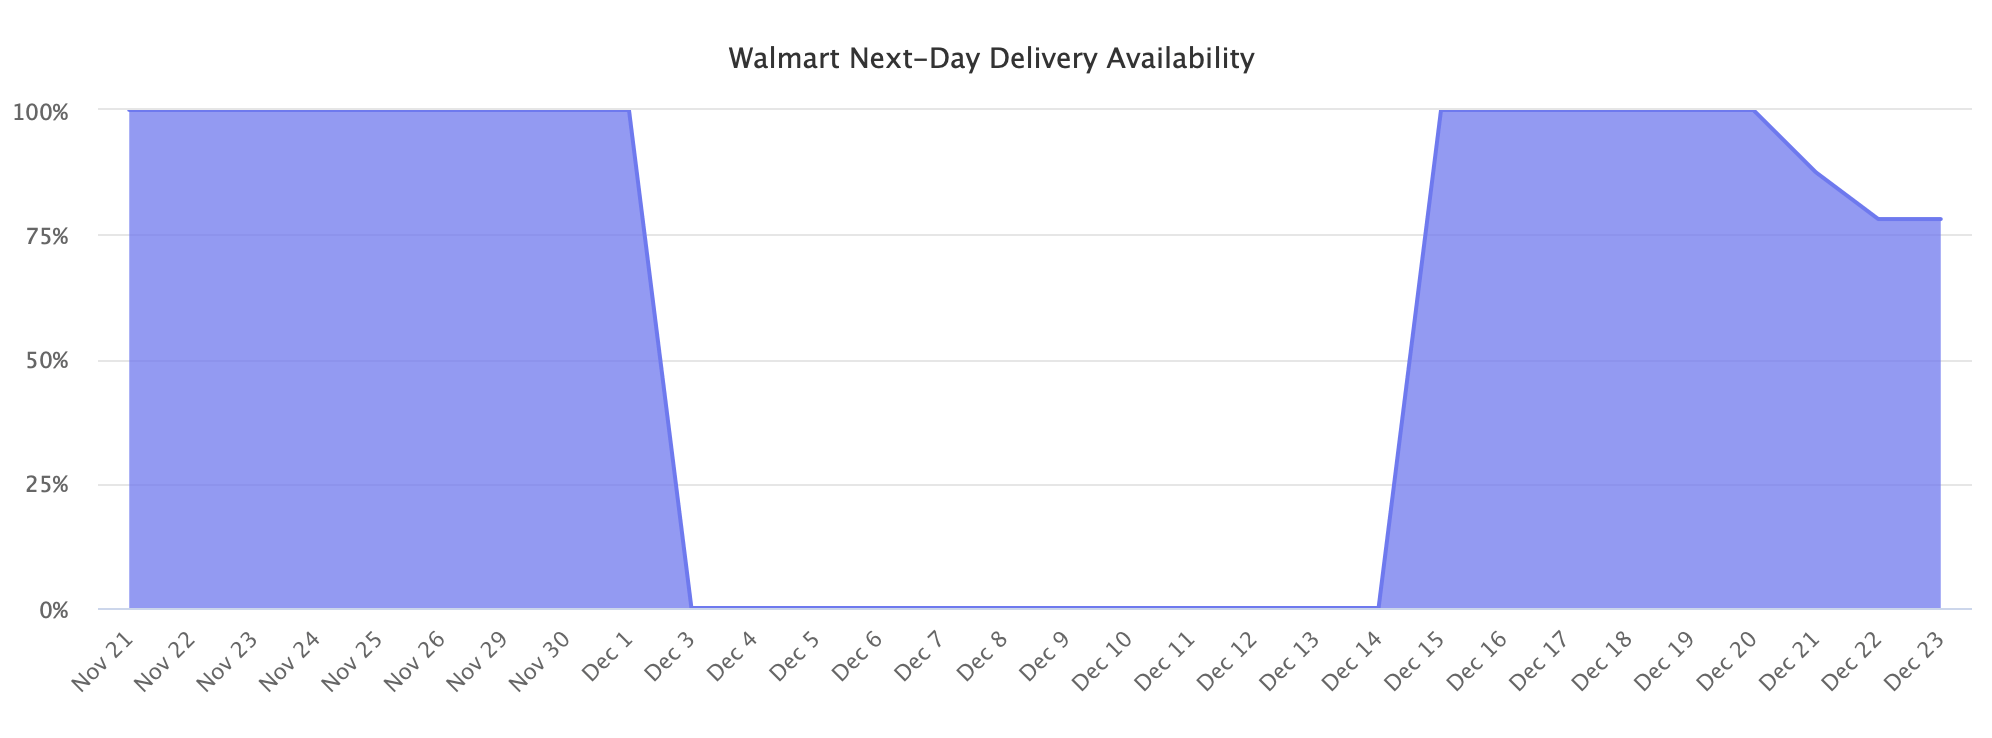 Walmart next-day delivery availability